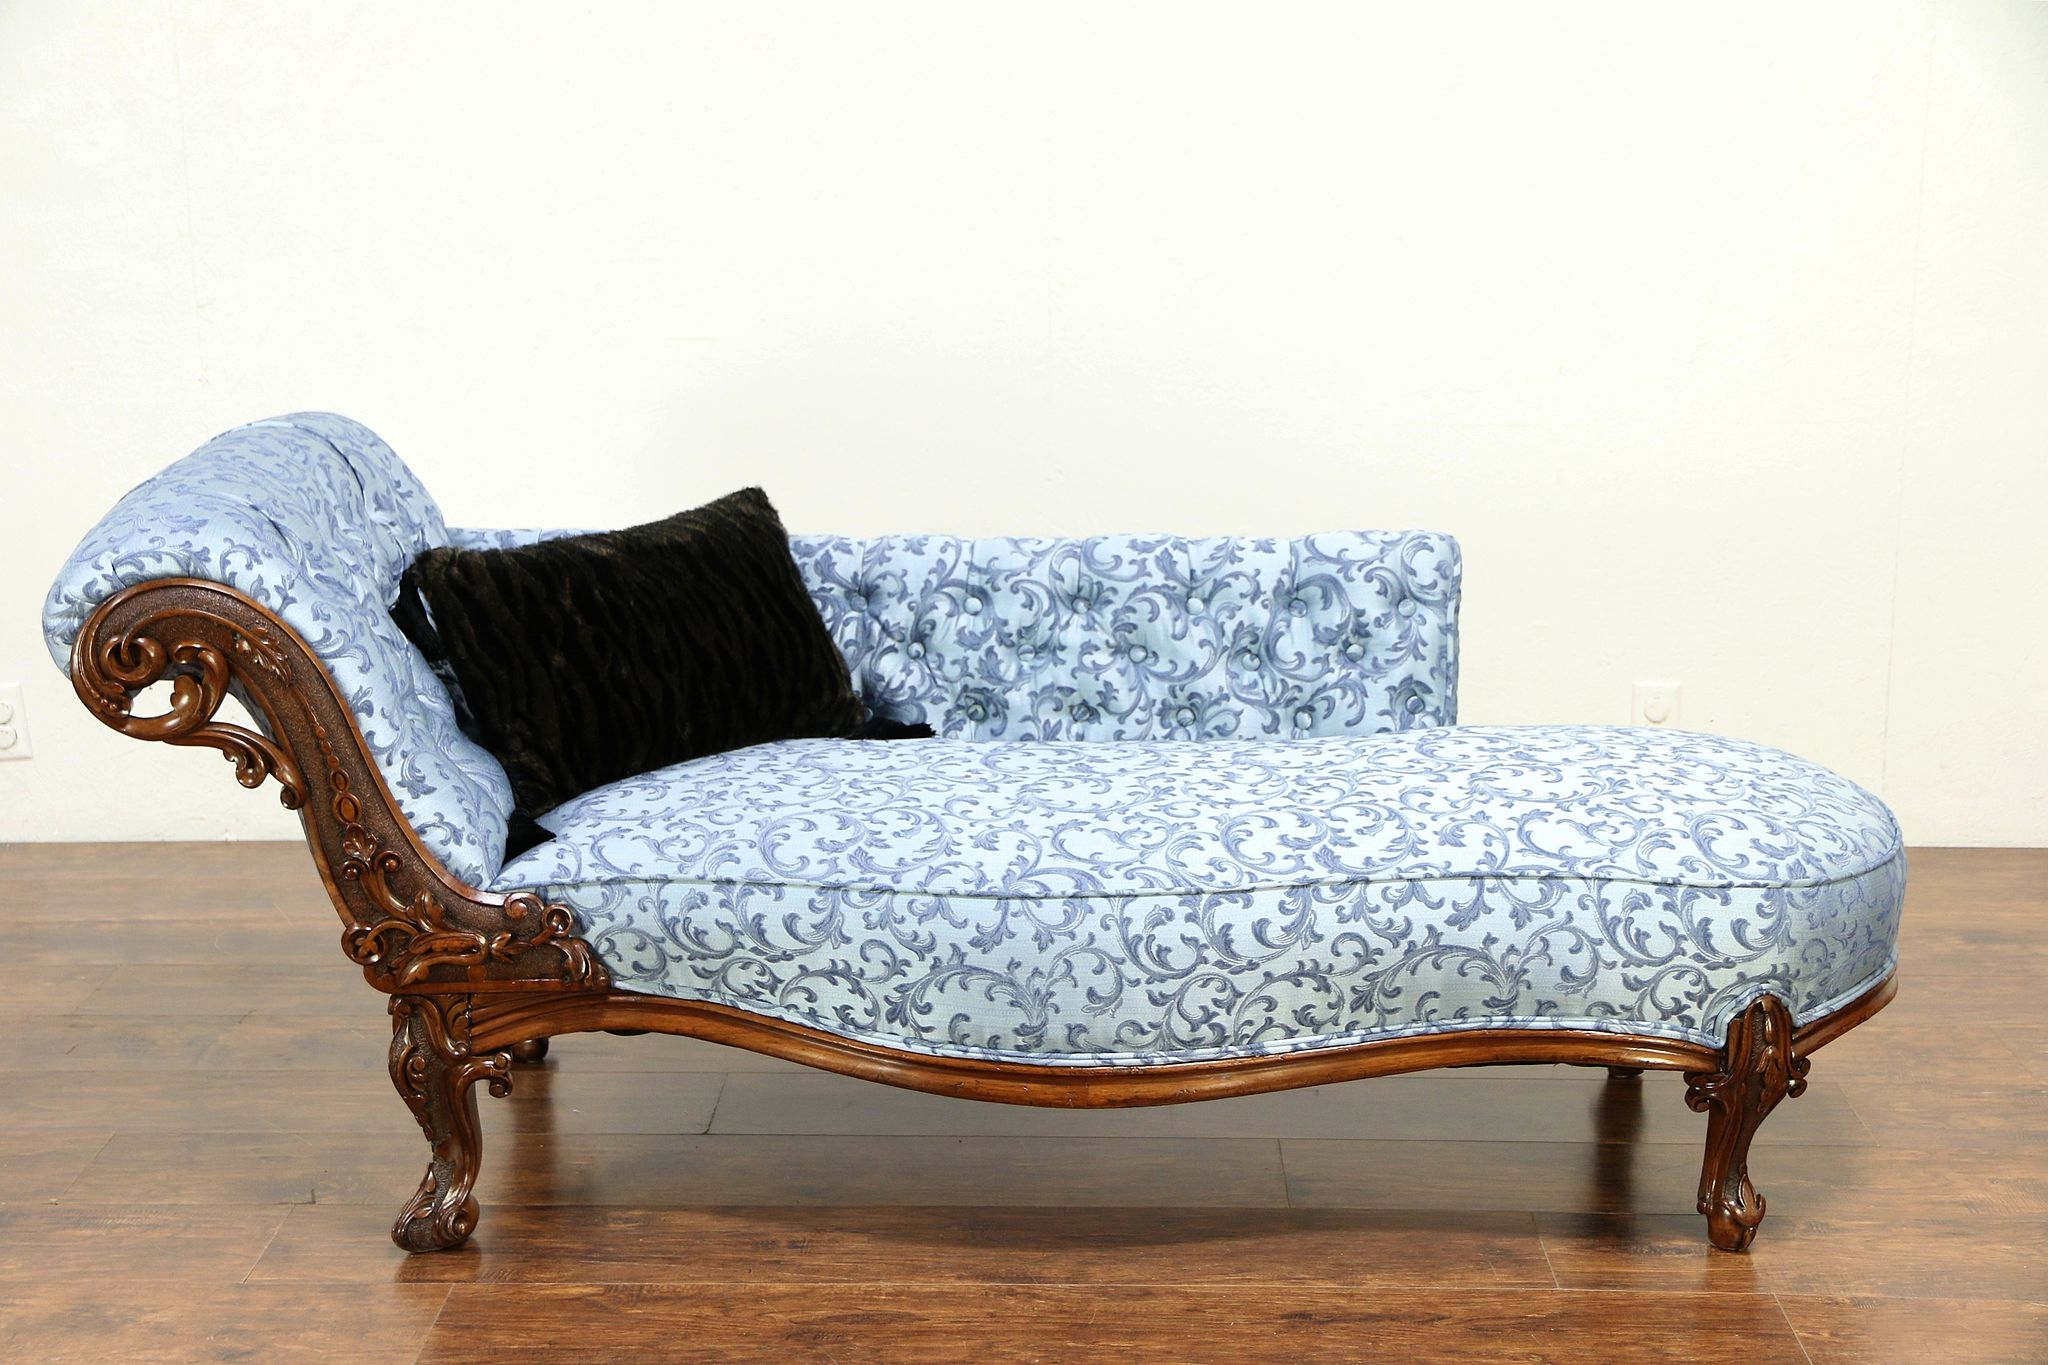 Fabulous Recamier Antique 1870 Chaise Lounge Or Fainting Couch New Upholstery 30149 Unemploymentrelief Wooden Chair Designs For Living Room Unemploymentrelieforg